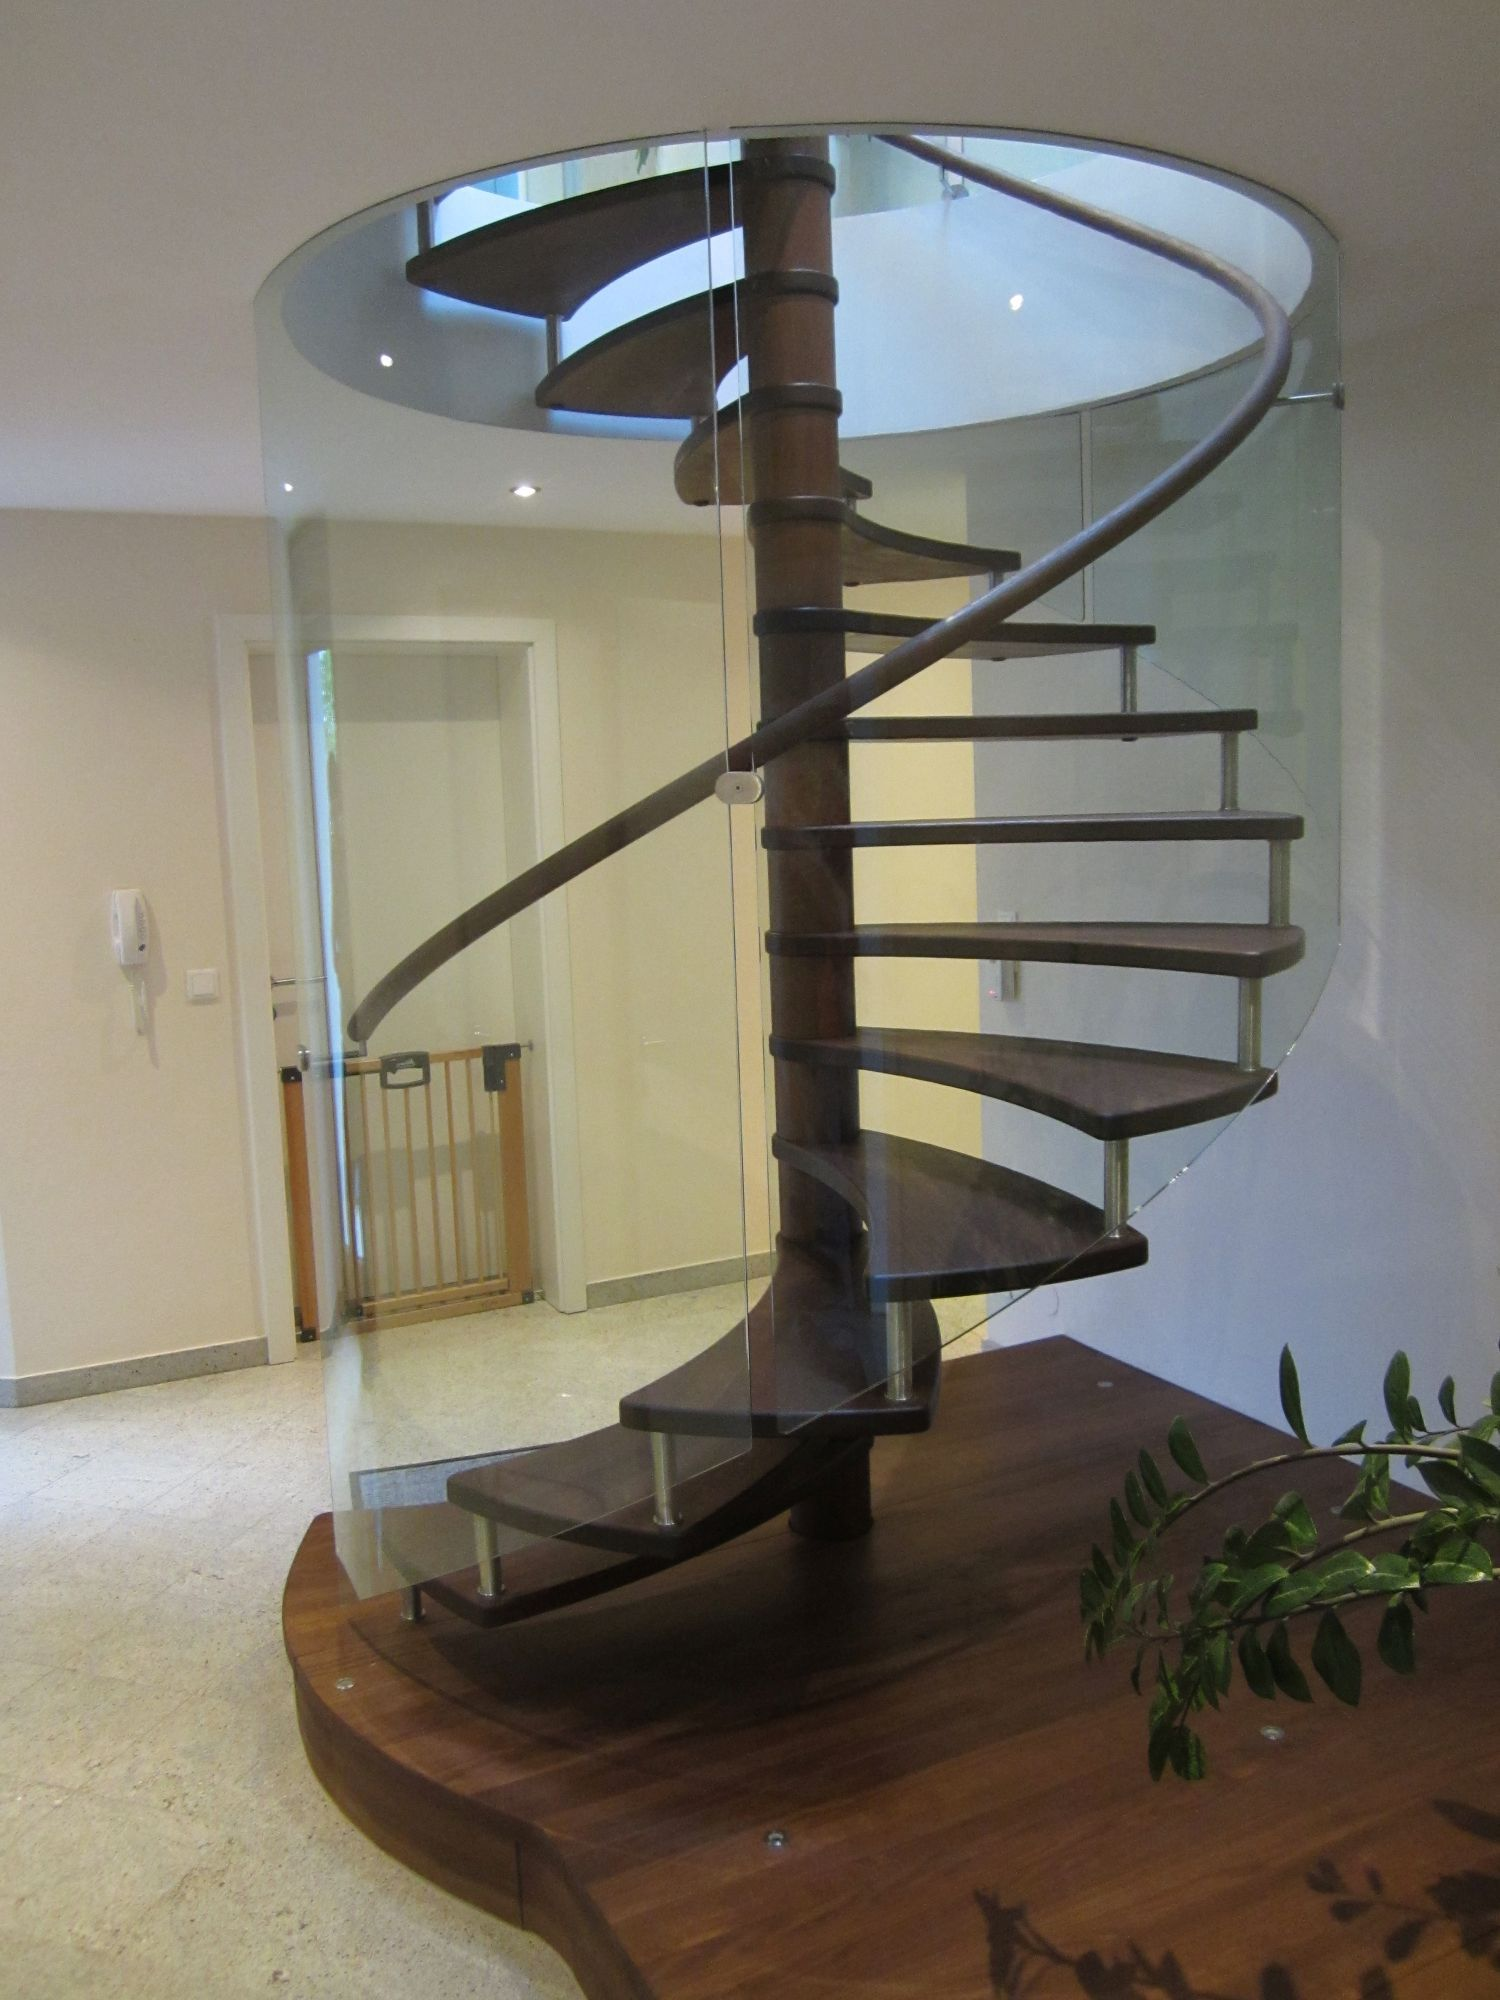 This picture is showing a modern spiral staircase with curved glass railing and floating - Modern interior design with spiral stairs contemporary spiral staircase design ...